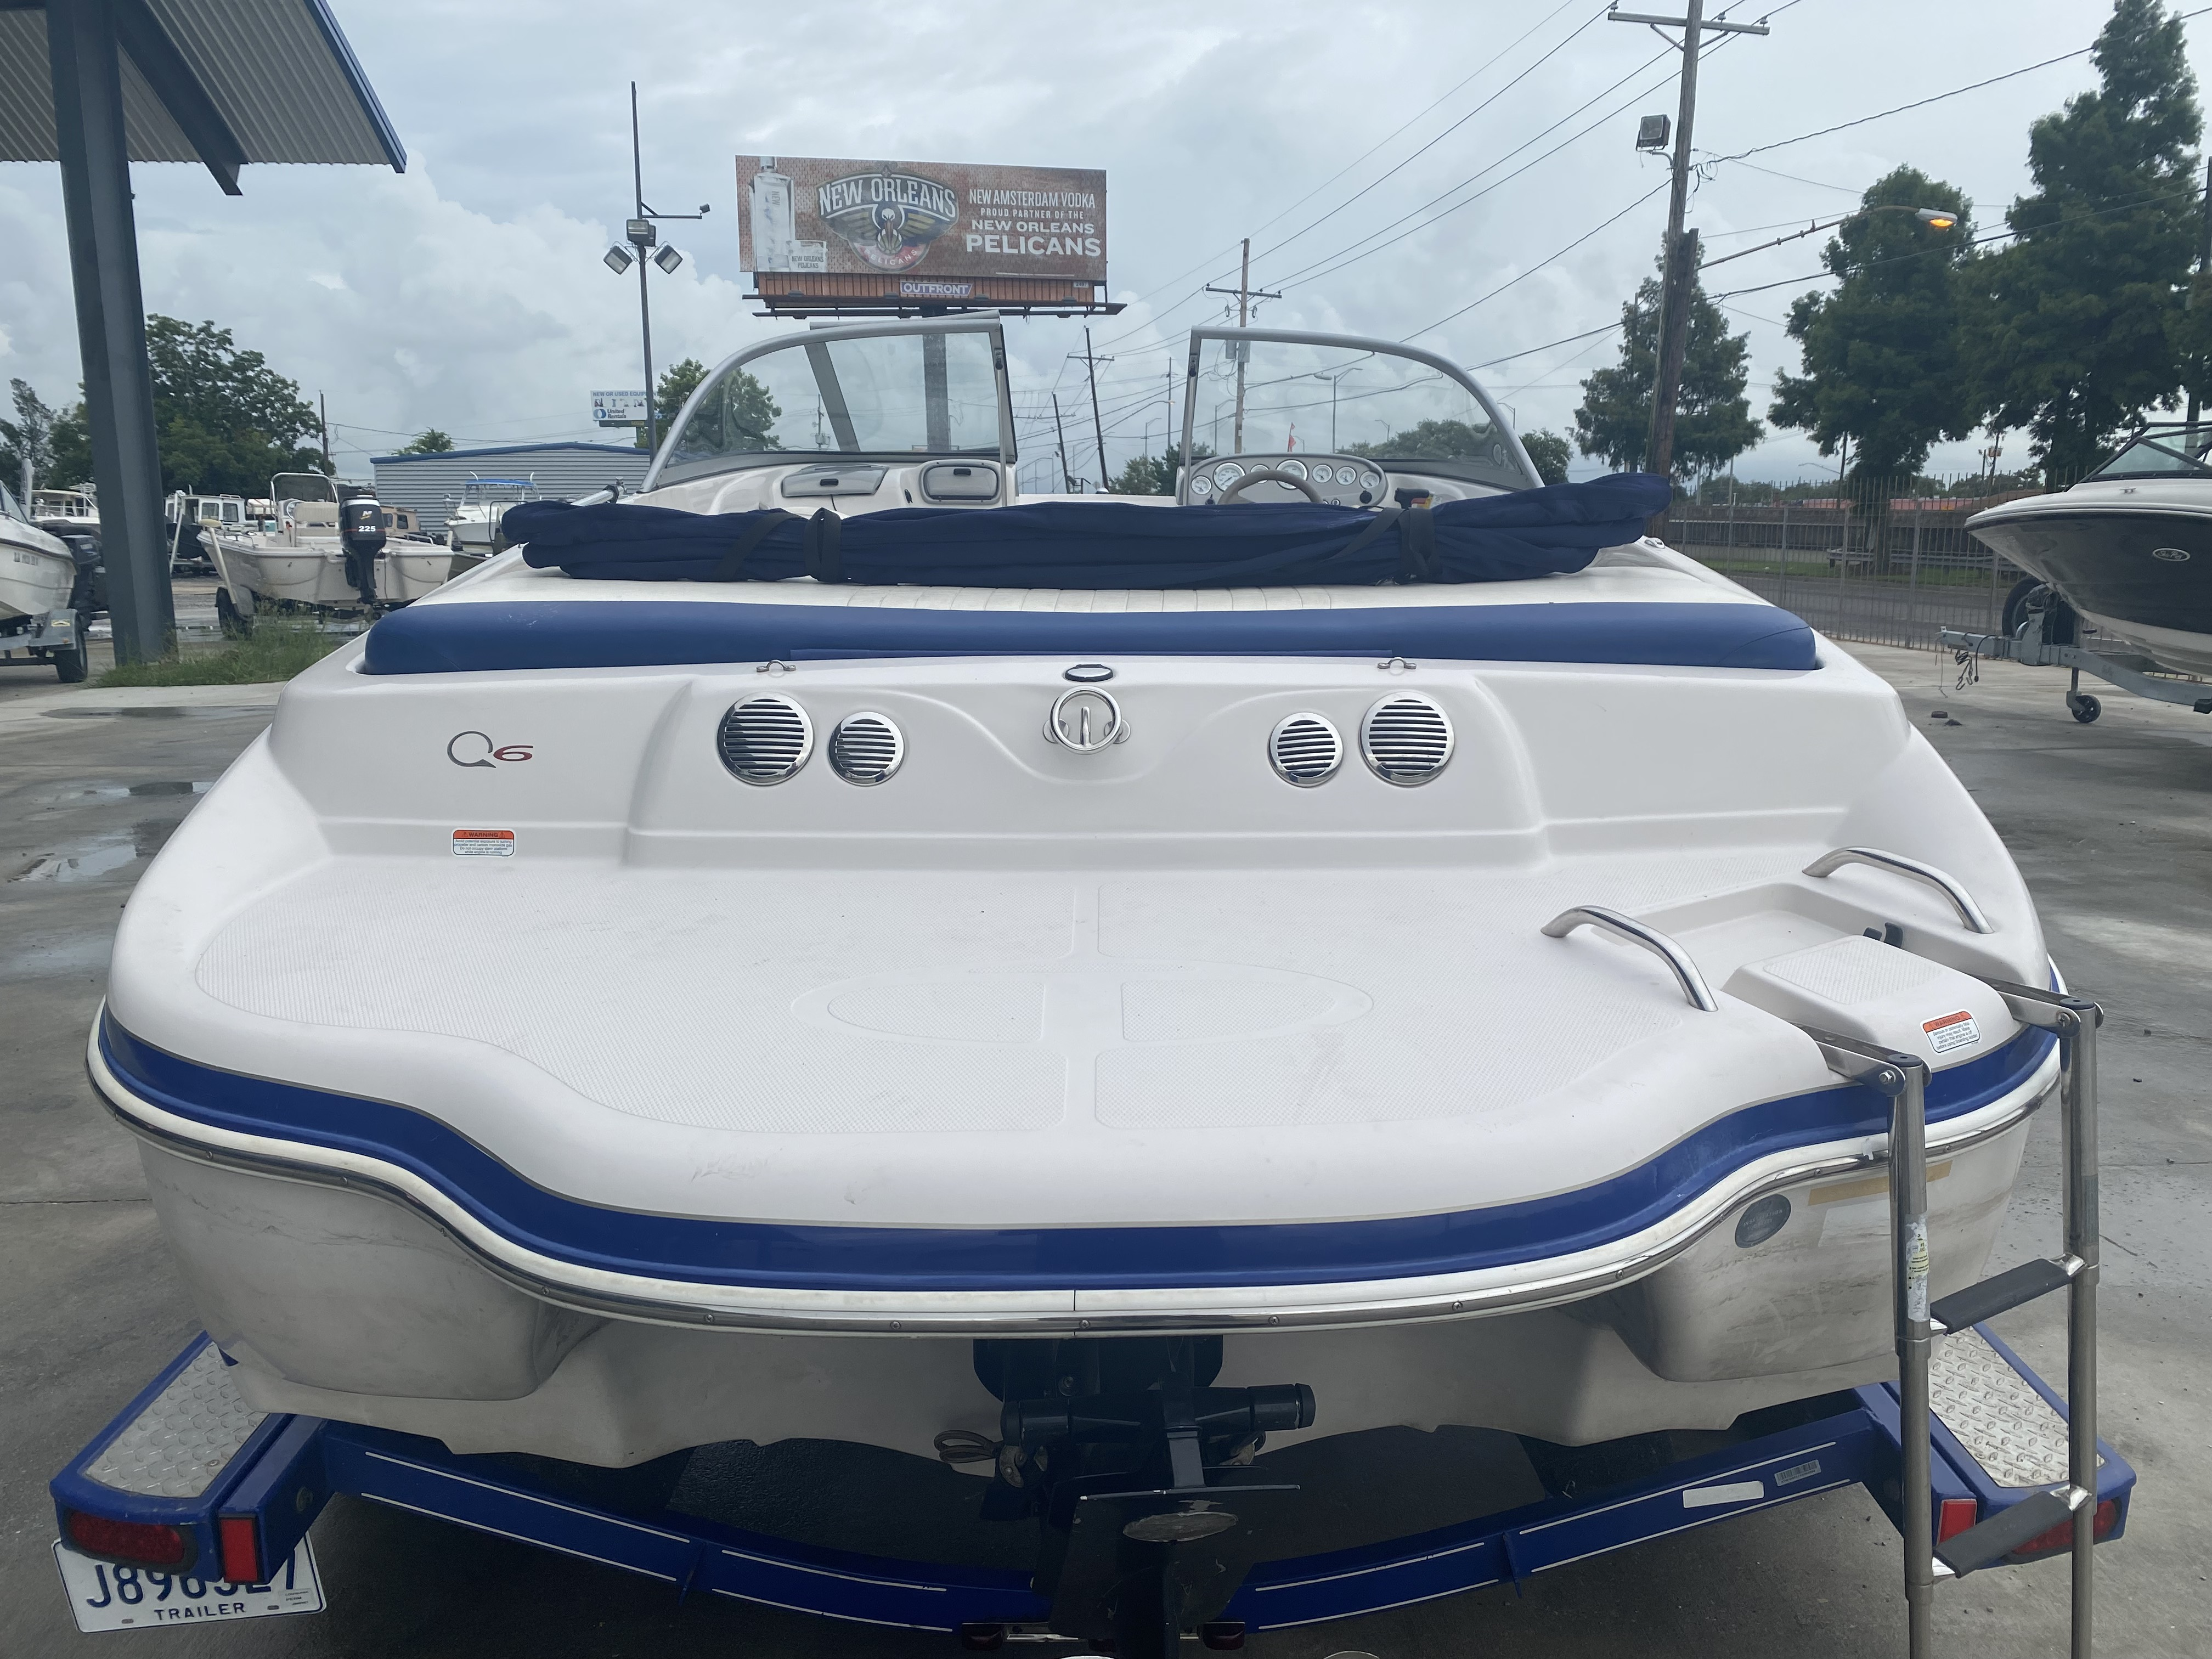 2008 Tahoe boat for sale, model of the boat is Q6 & Image # 6 of 10